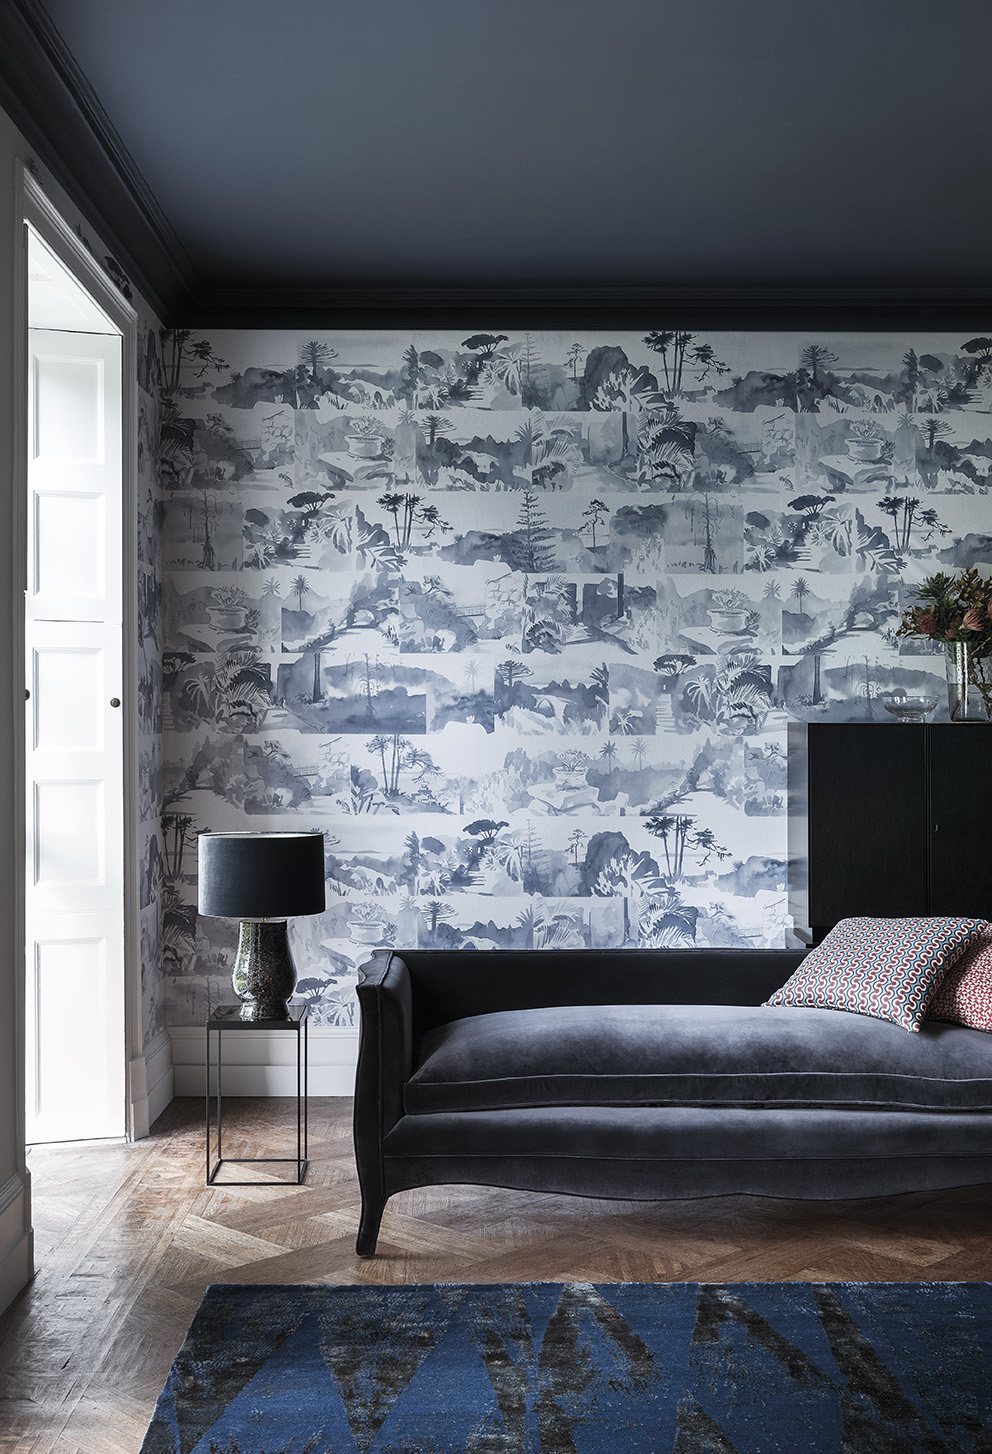 'Tresco' in collaboration with Hugo Dalton by Paint & Paper Library; Wallpaper: Abbey Gardens - Blue Blood; Paint: Ceiling & Architrave in Blue Blood 668 in Pure Flat Emulsion and Window Sill & Skirting in Lead I 681 in Architects' Eggshell.